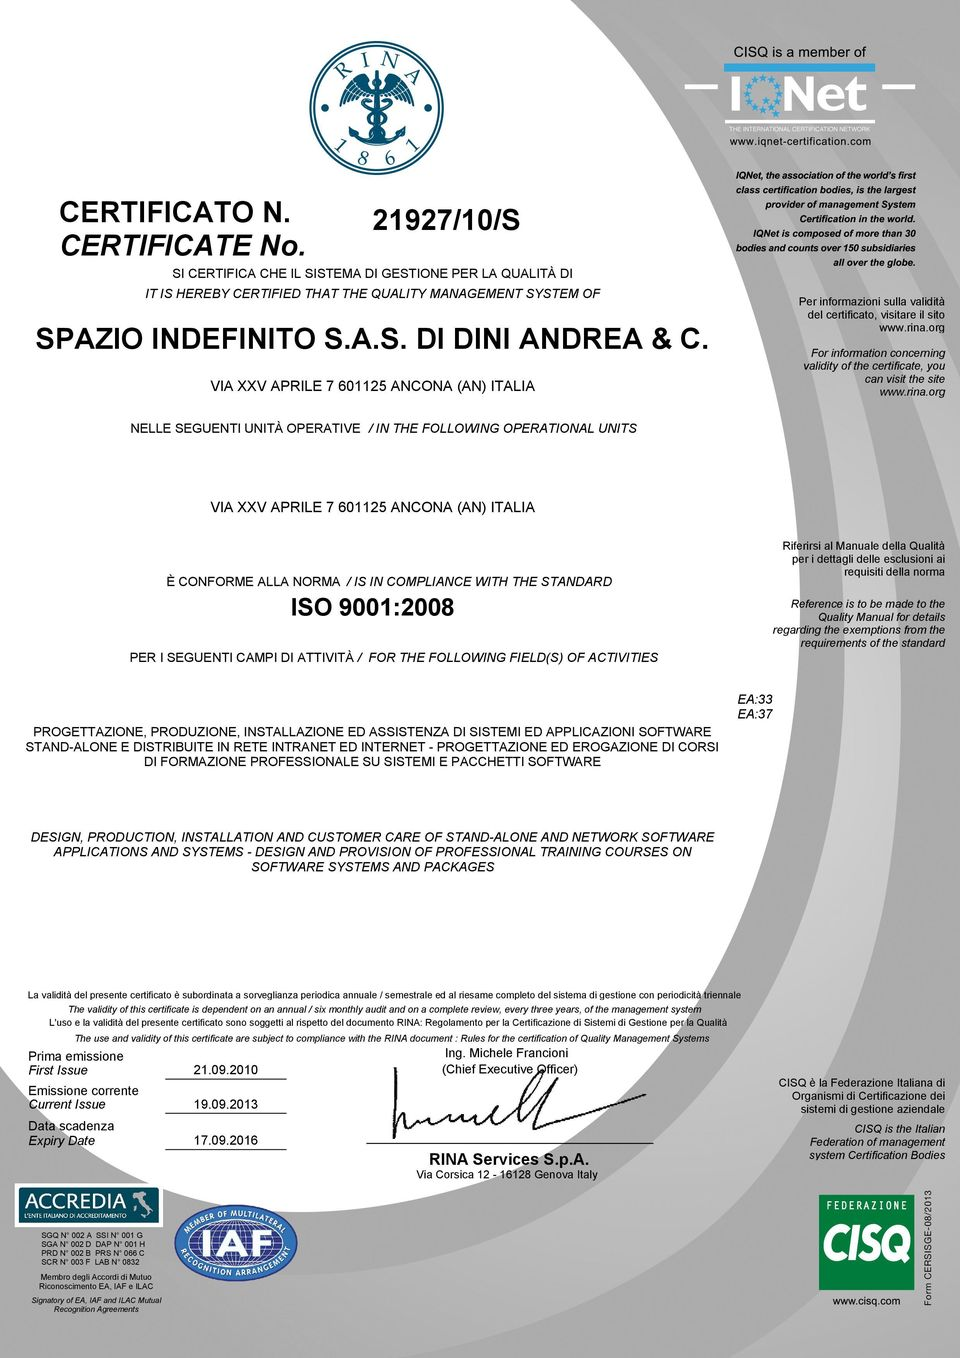 org For information concerning validity of the certificate, you can visit the site www.rina.